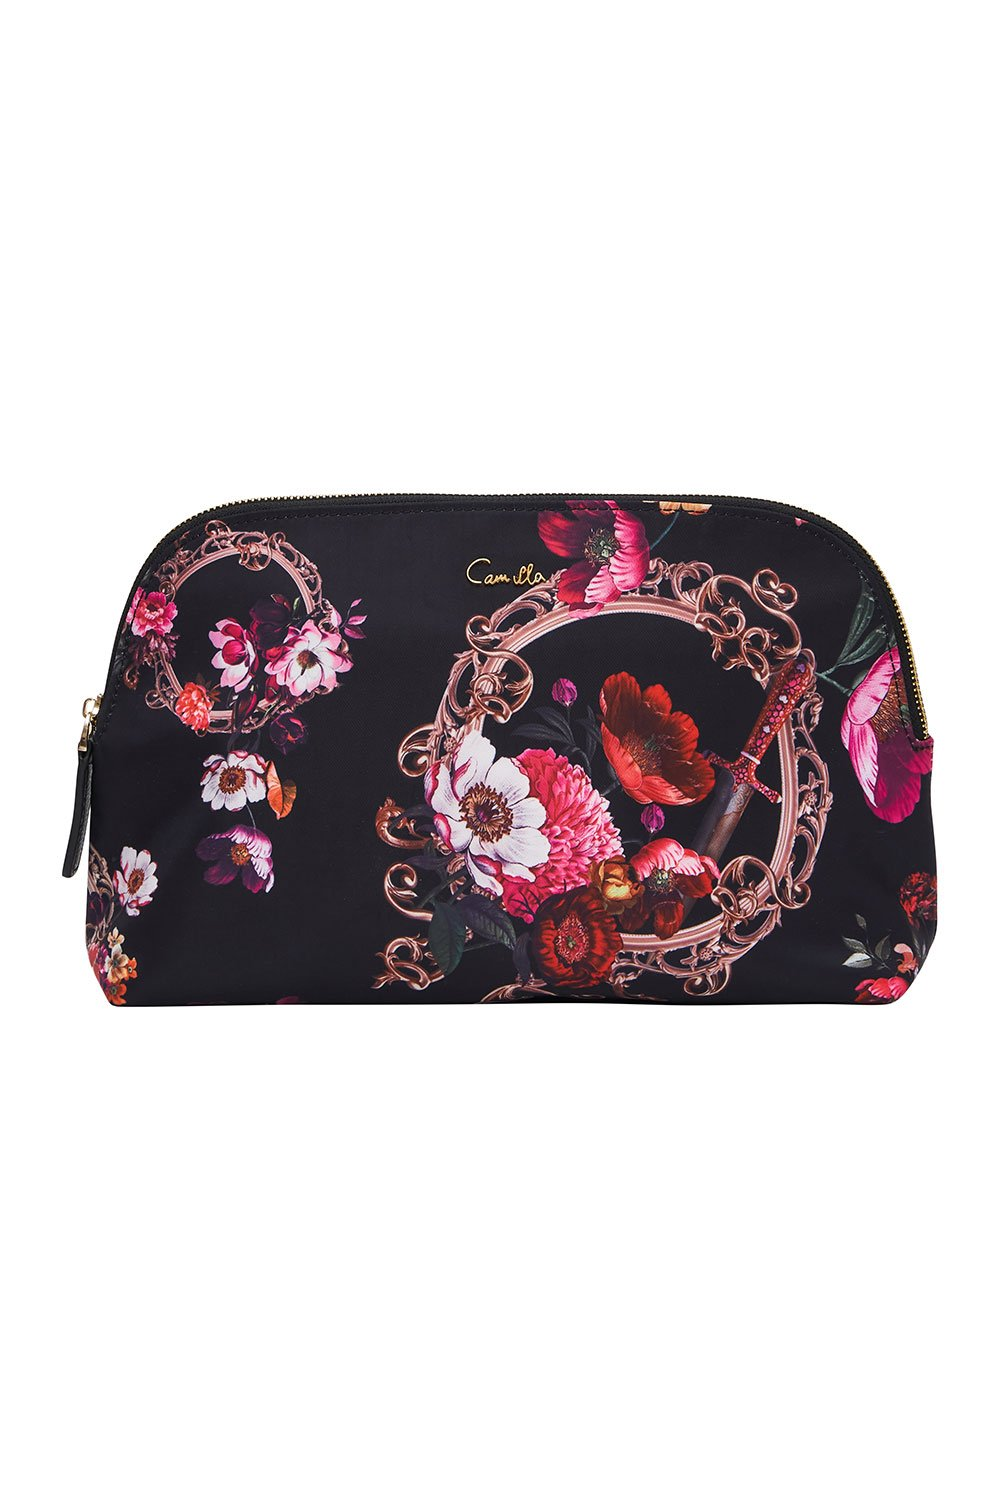 LARGE COSMETIC CASE MIRROR MIRROR